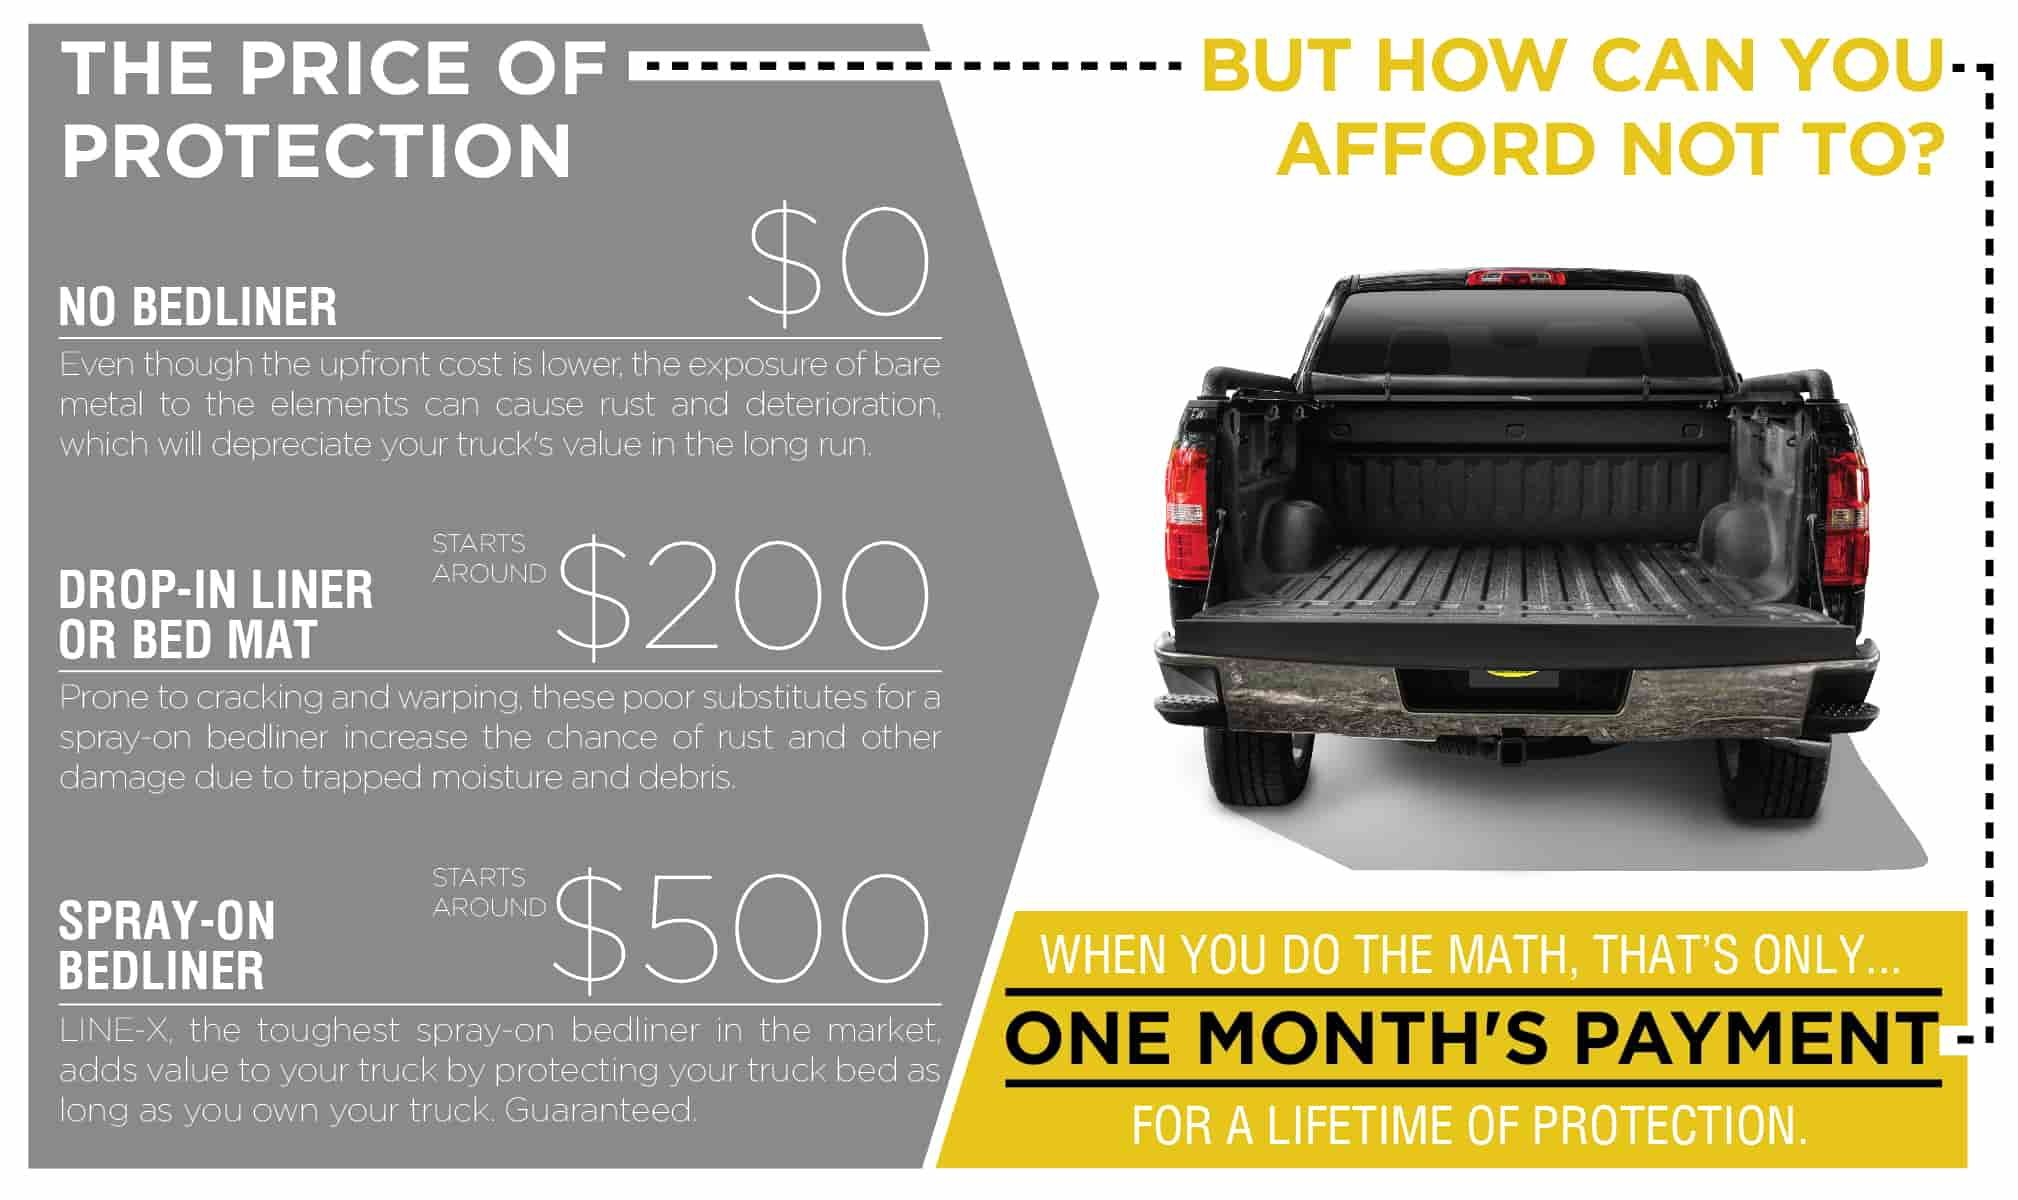 ADDING VALUE AND VIRTUAL INDESTRUCTIBILITY TO YOUR TRUCK ...